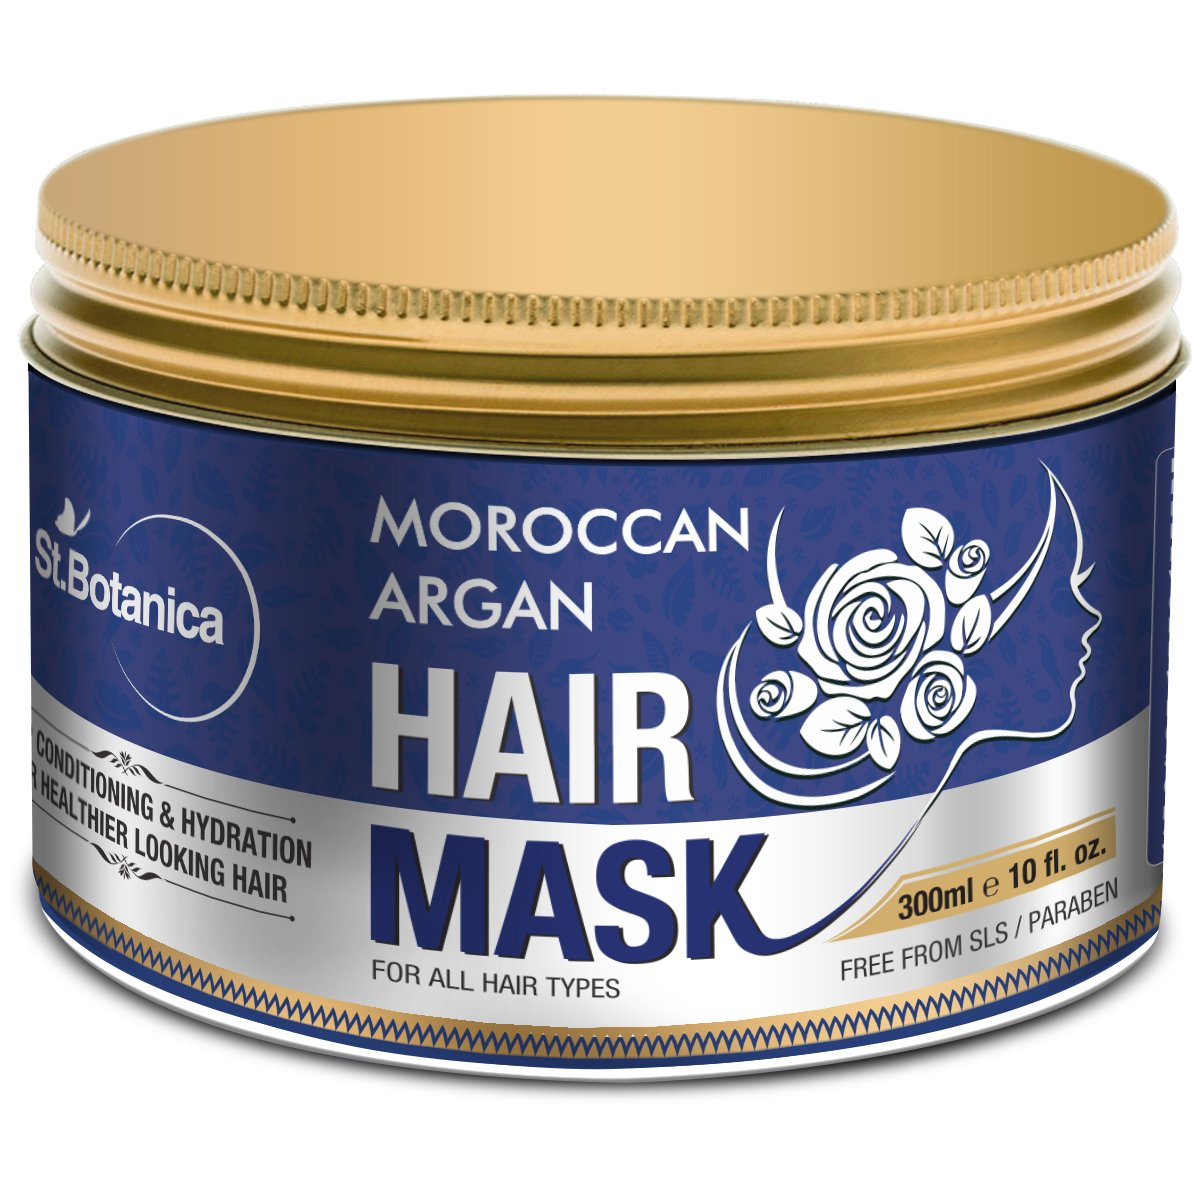 Stbotanica Moroccan Argan Hair Mask - Deep Conditioning &